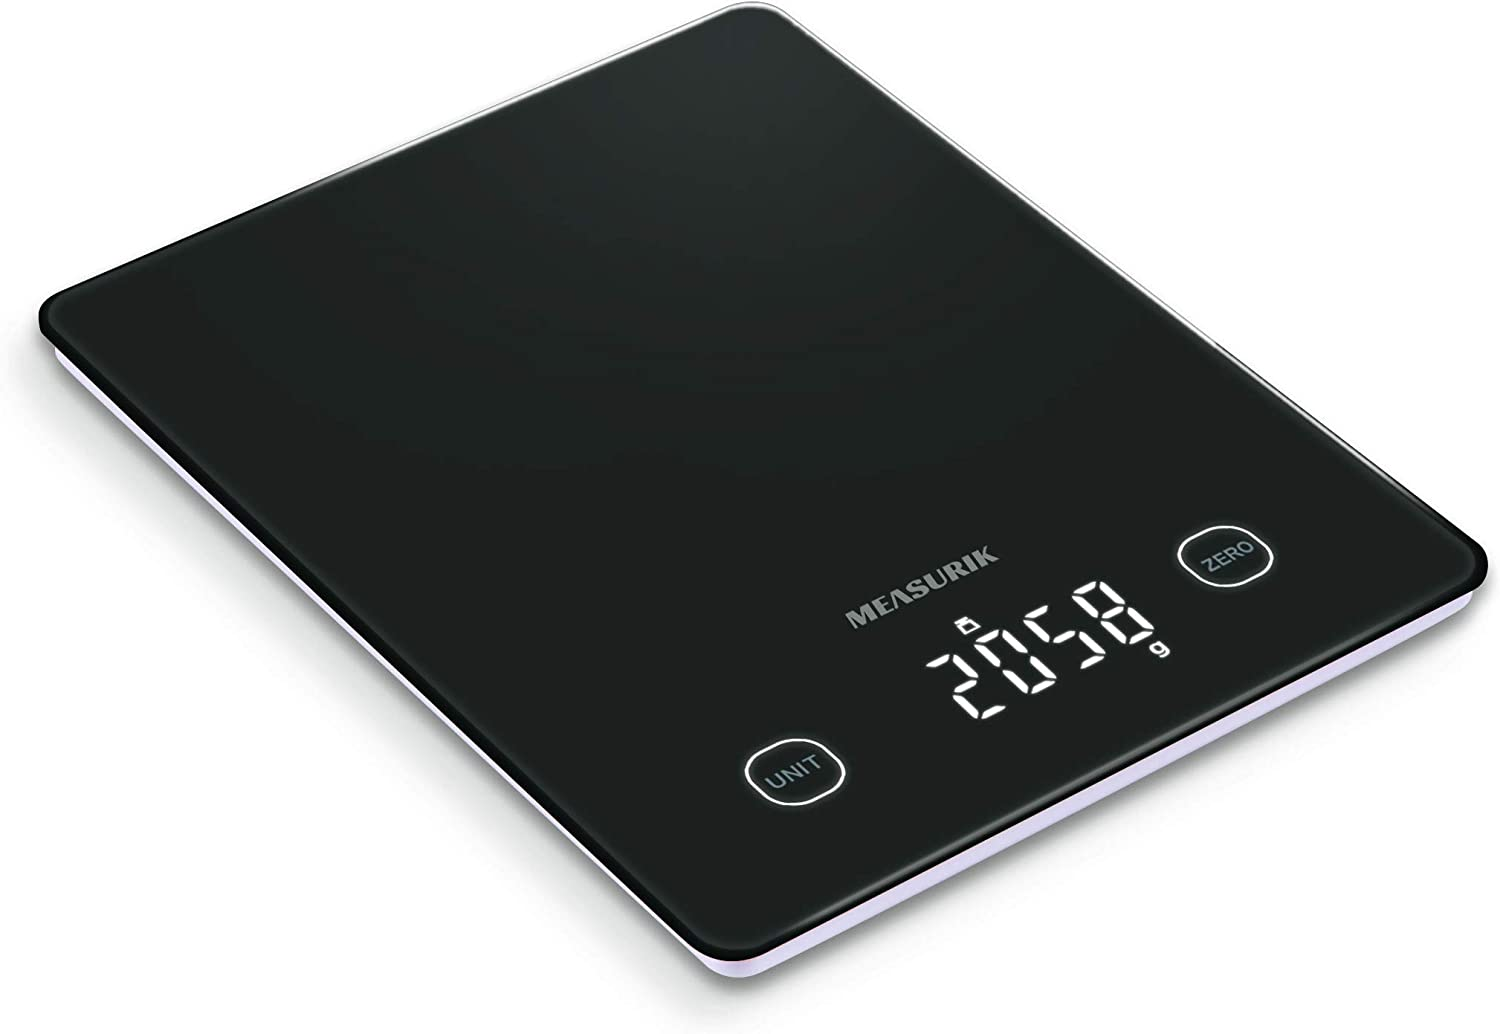 Measurik Digital Food Kitchen Weighing Scale - Multifunction High Accuracy Measurement Cooking Weight Scale Up to 11lb/5kg Weigh Gram/Oz and Milk Volume, Batteries Included